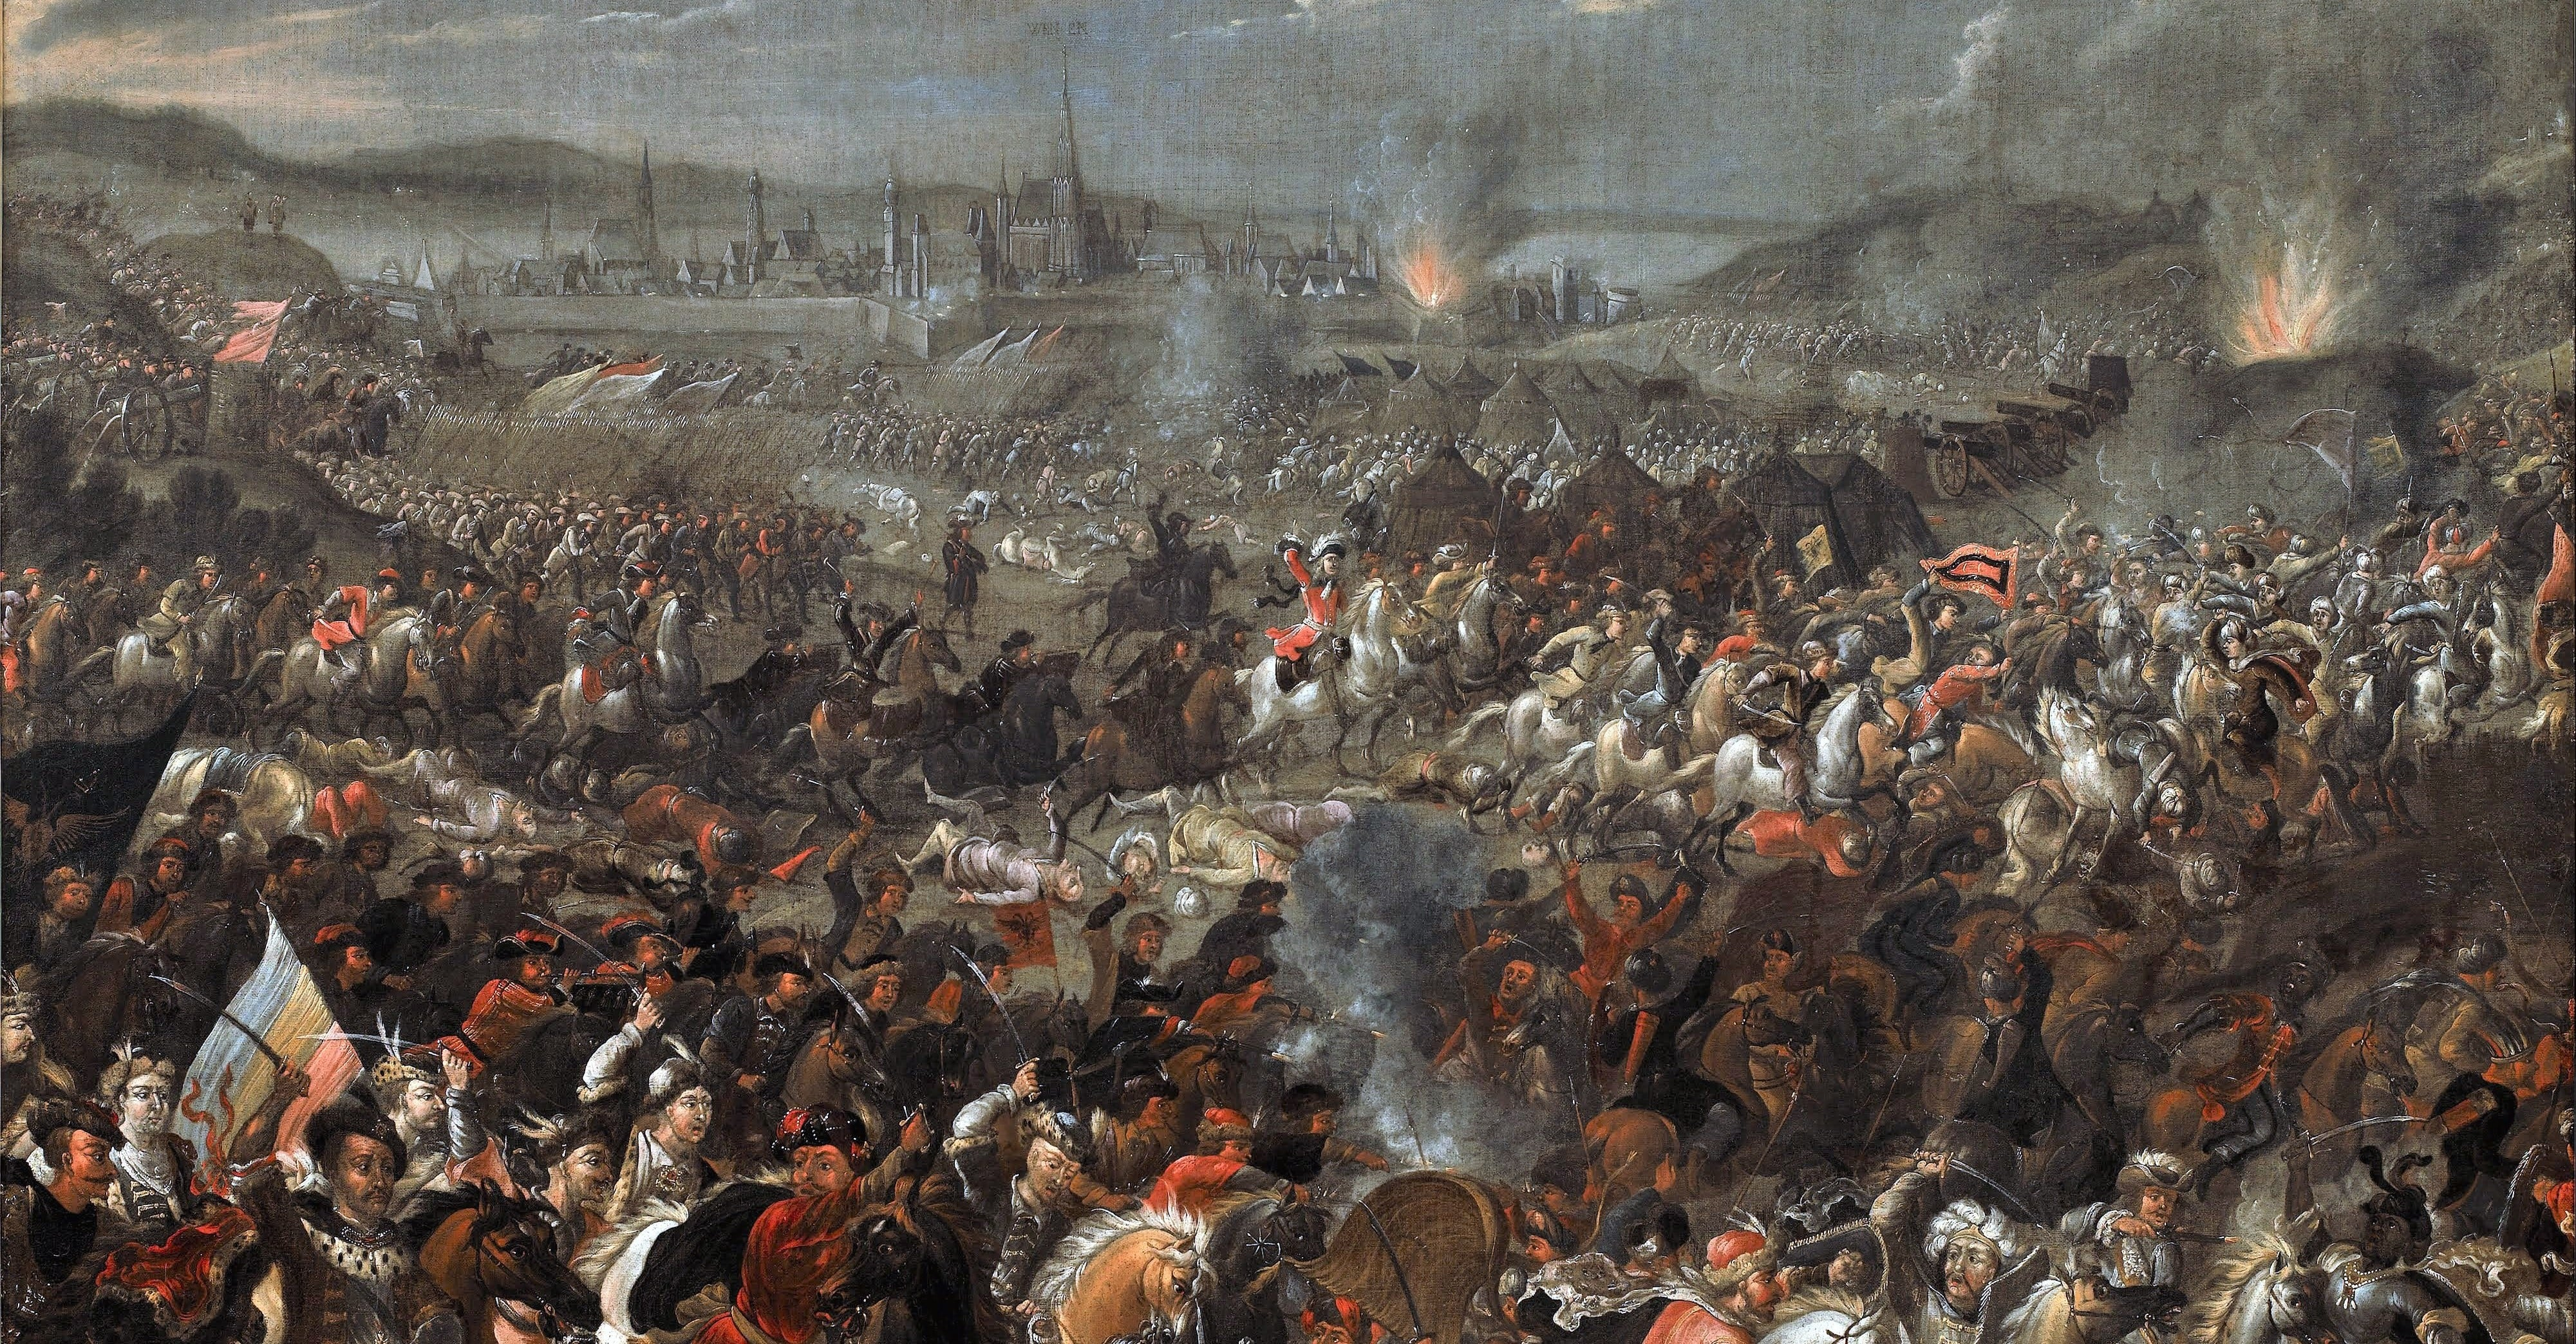 The Battle of Vienna in 1683, as depicted by Pauwel Casteels (Photo Wikimedia)